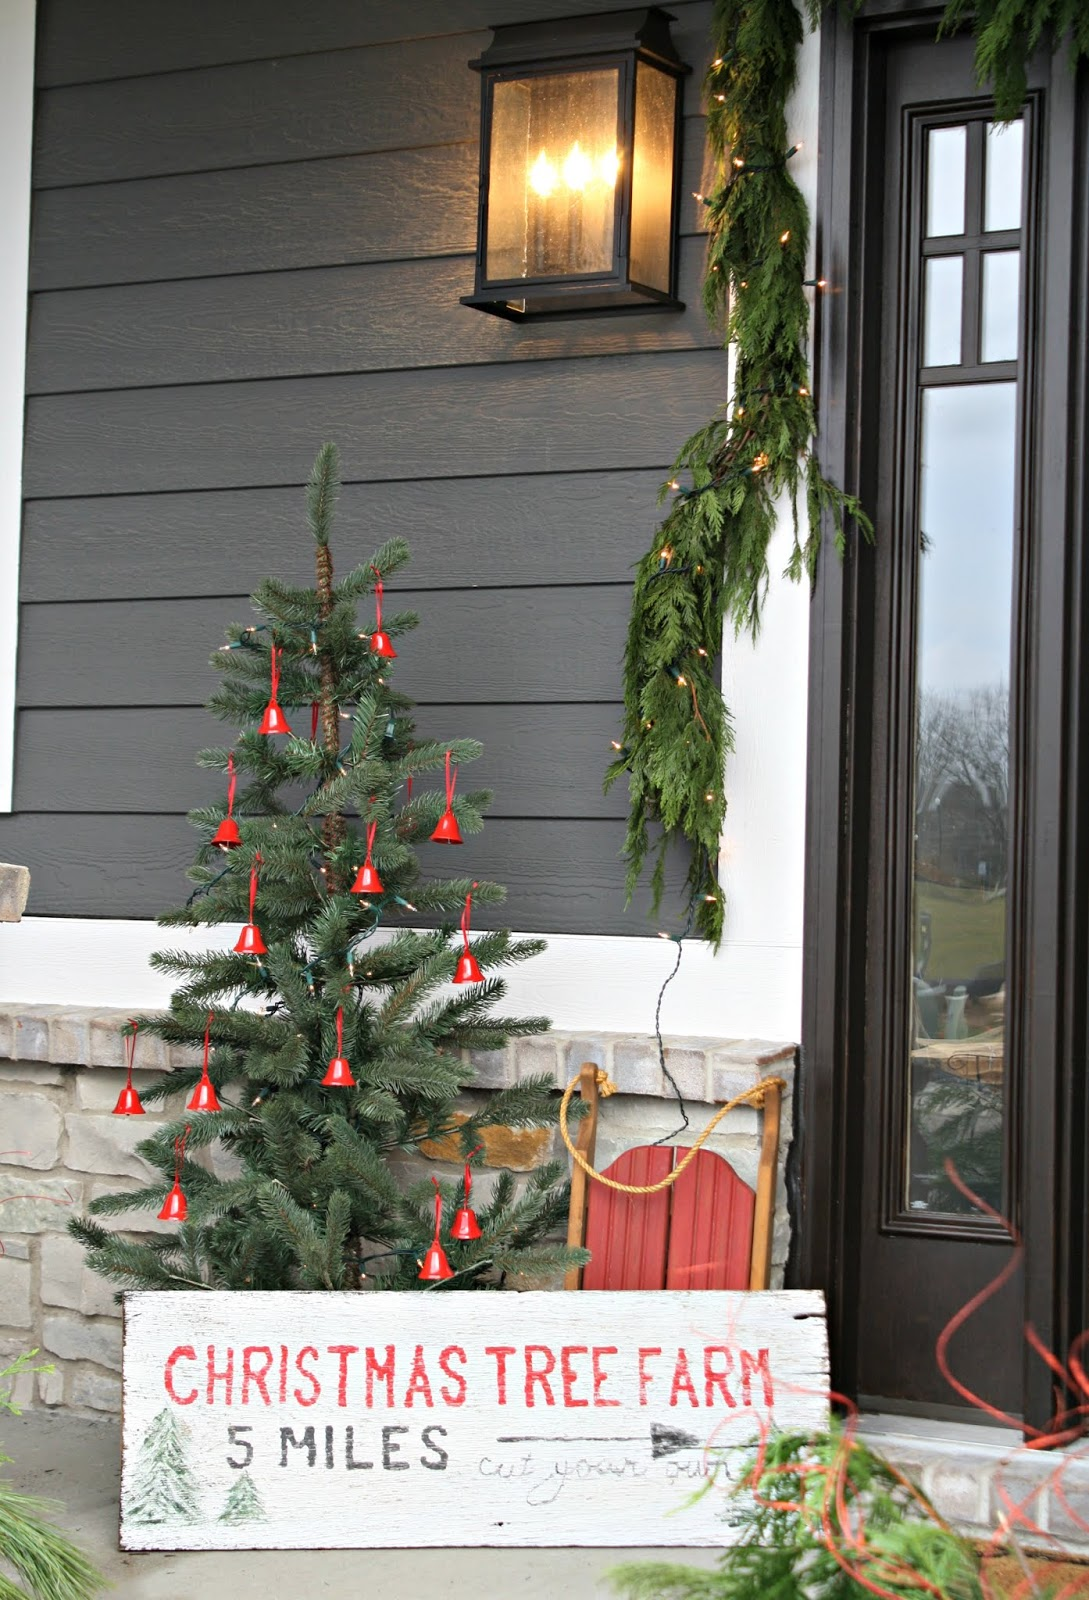 Christmas porch with tree and sign